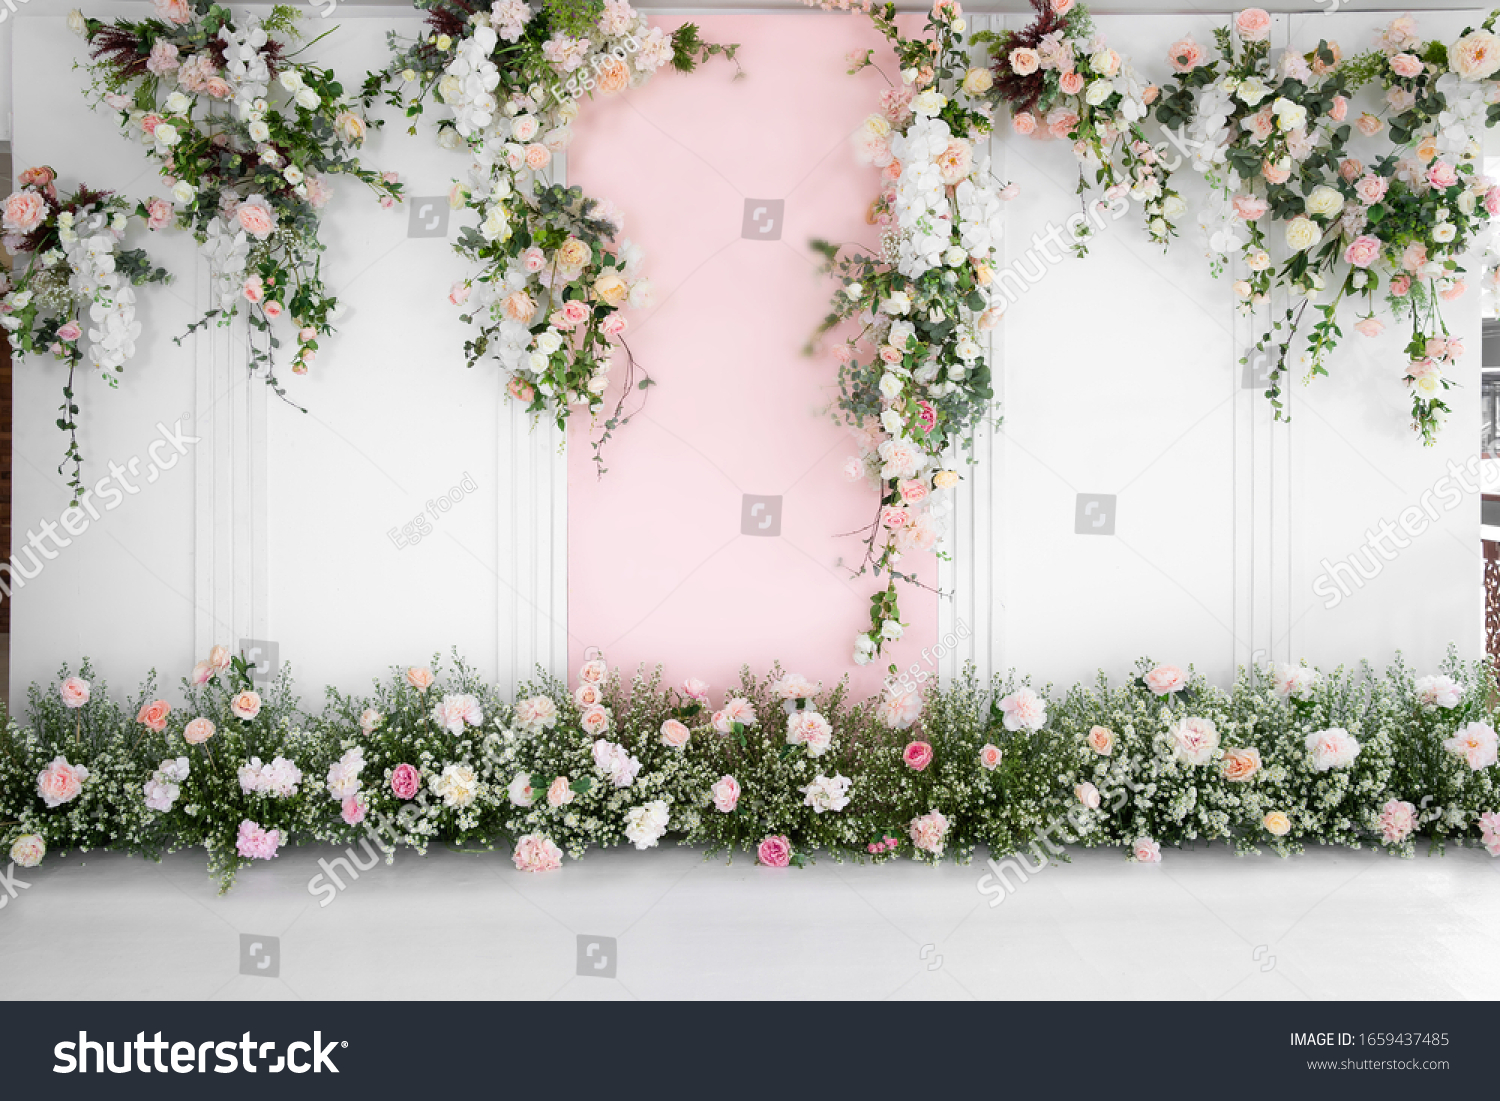 Beautiful wedding flower backdrop For taking pictures. #1659437485